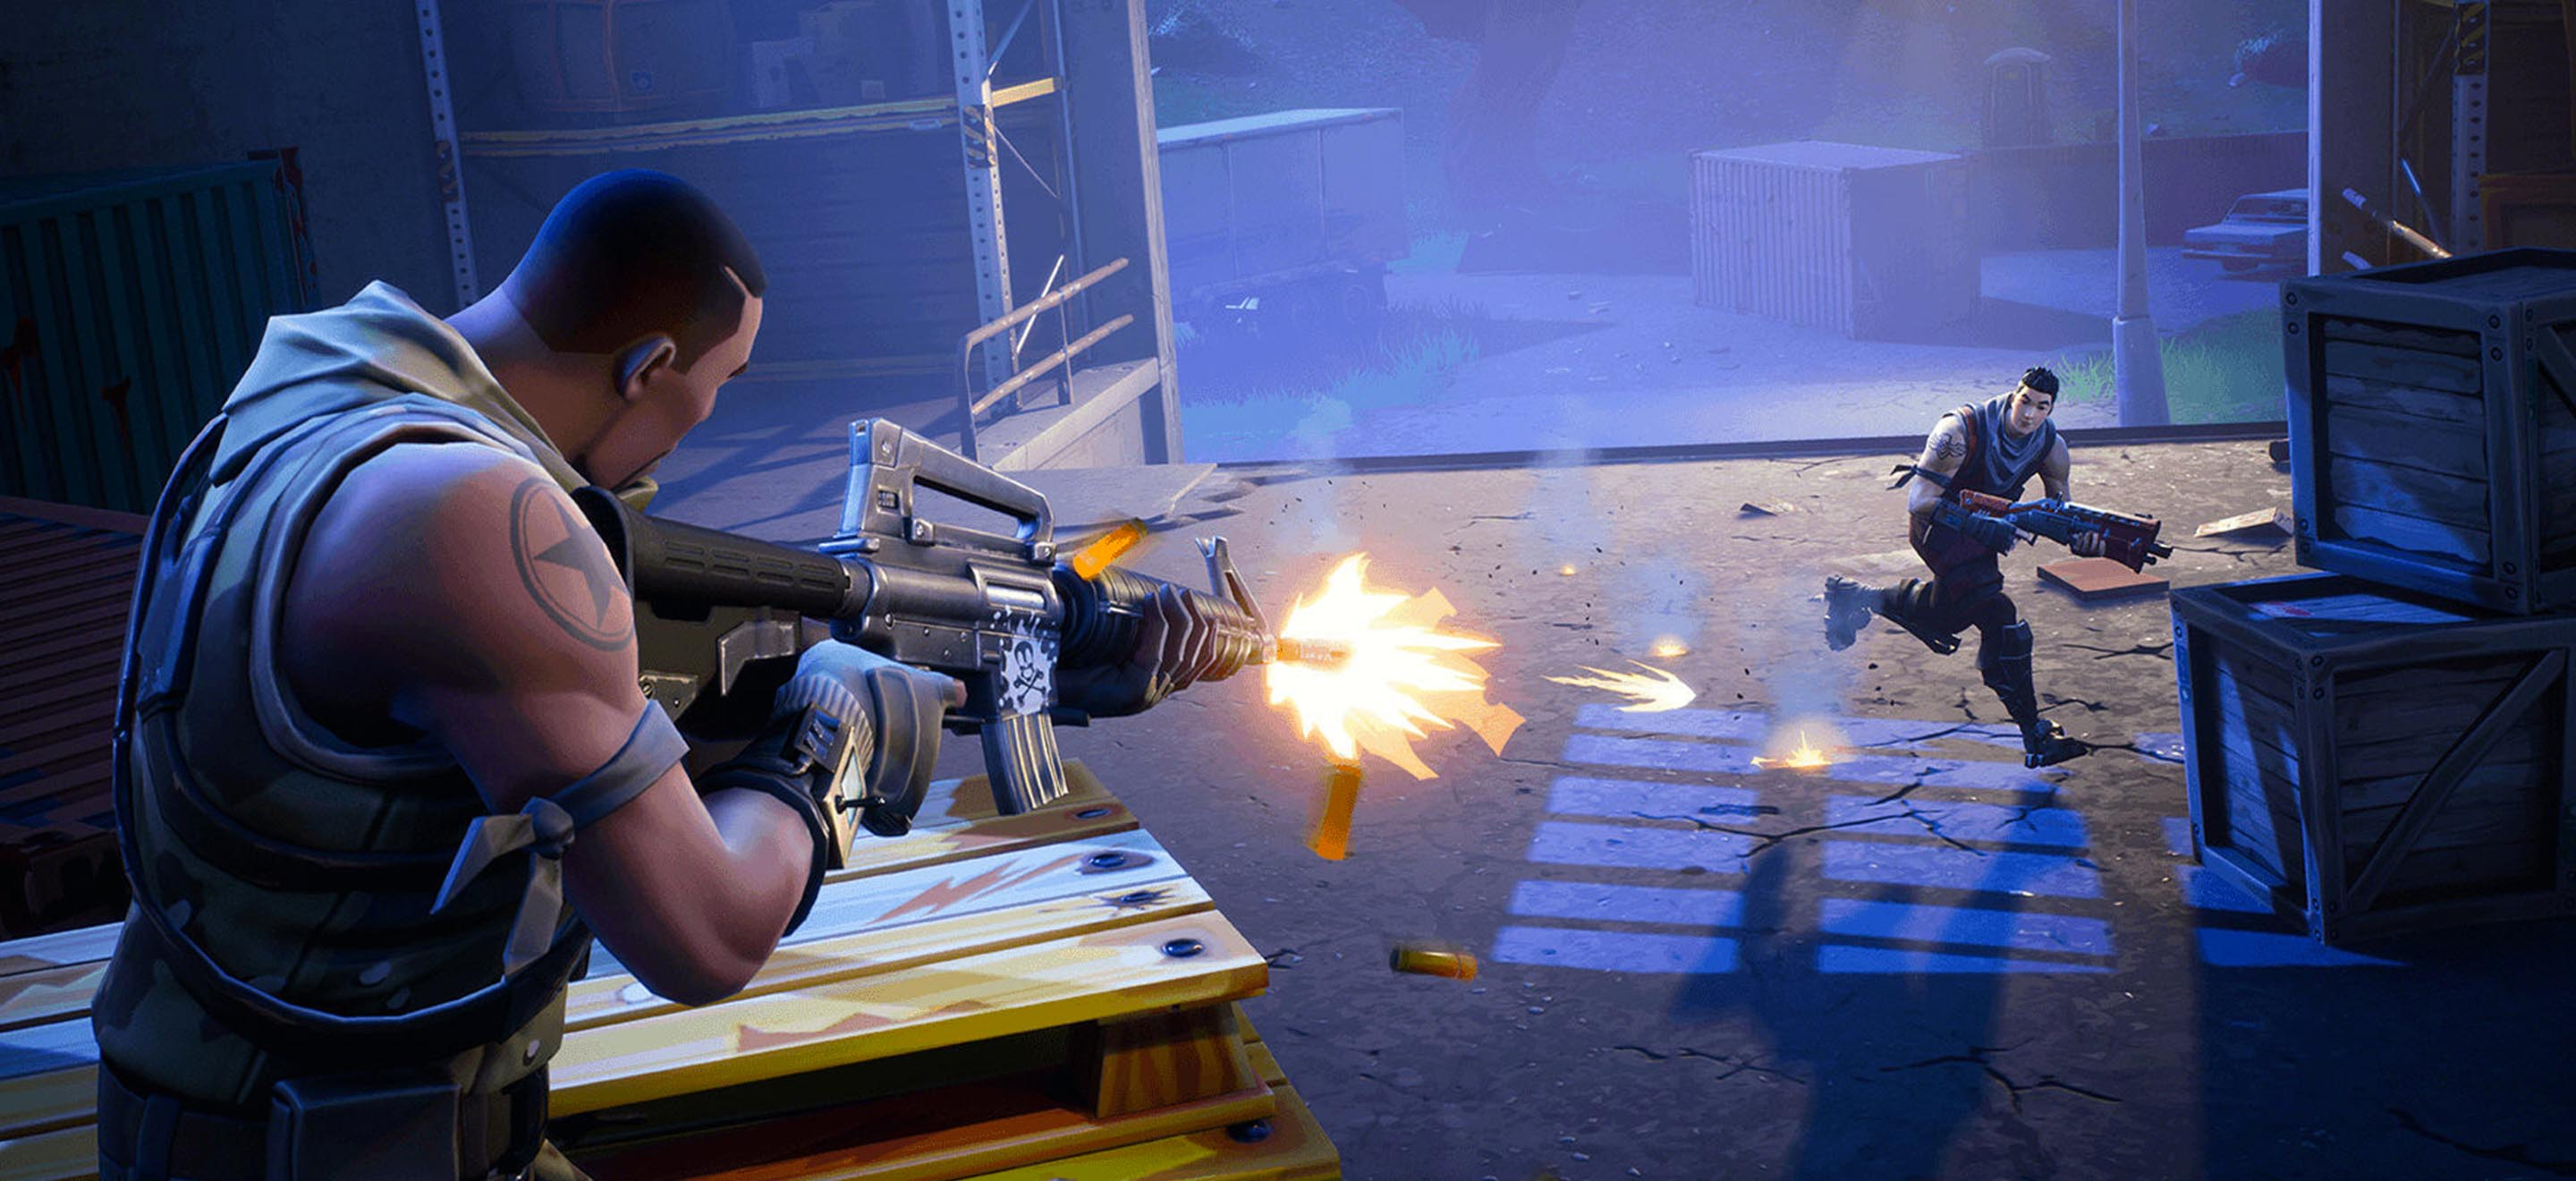 https://www.micromania.fr/on/demandware.static/-/Sites-Micromania-Library/default/dw7bd42be0/fanzone/dossier/fortnite/Fortnite-tirs.jpg